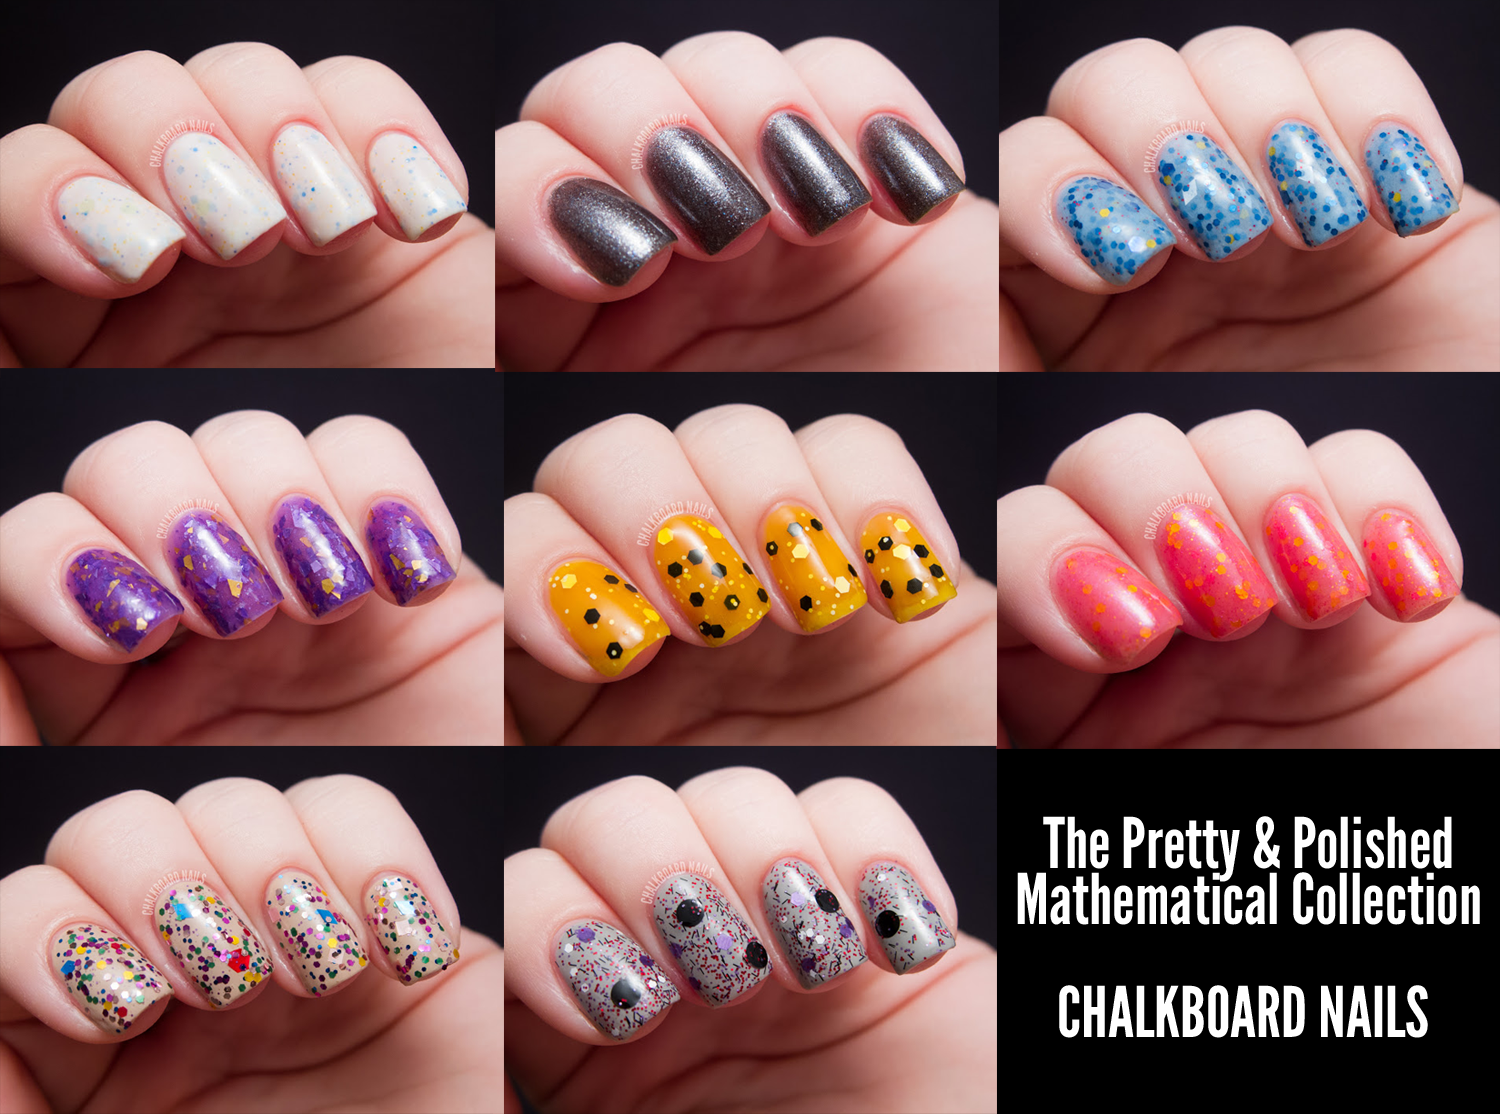 The Pretty And Polished Mathematical Collection Chalkboard Nails